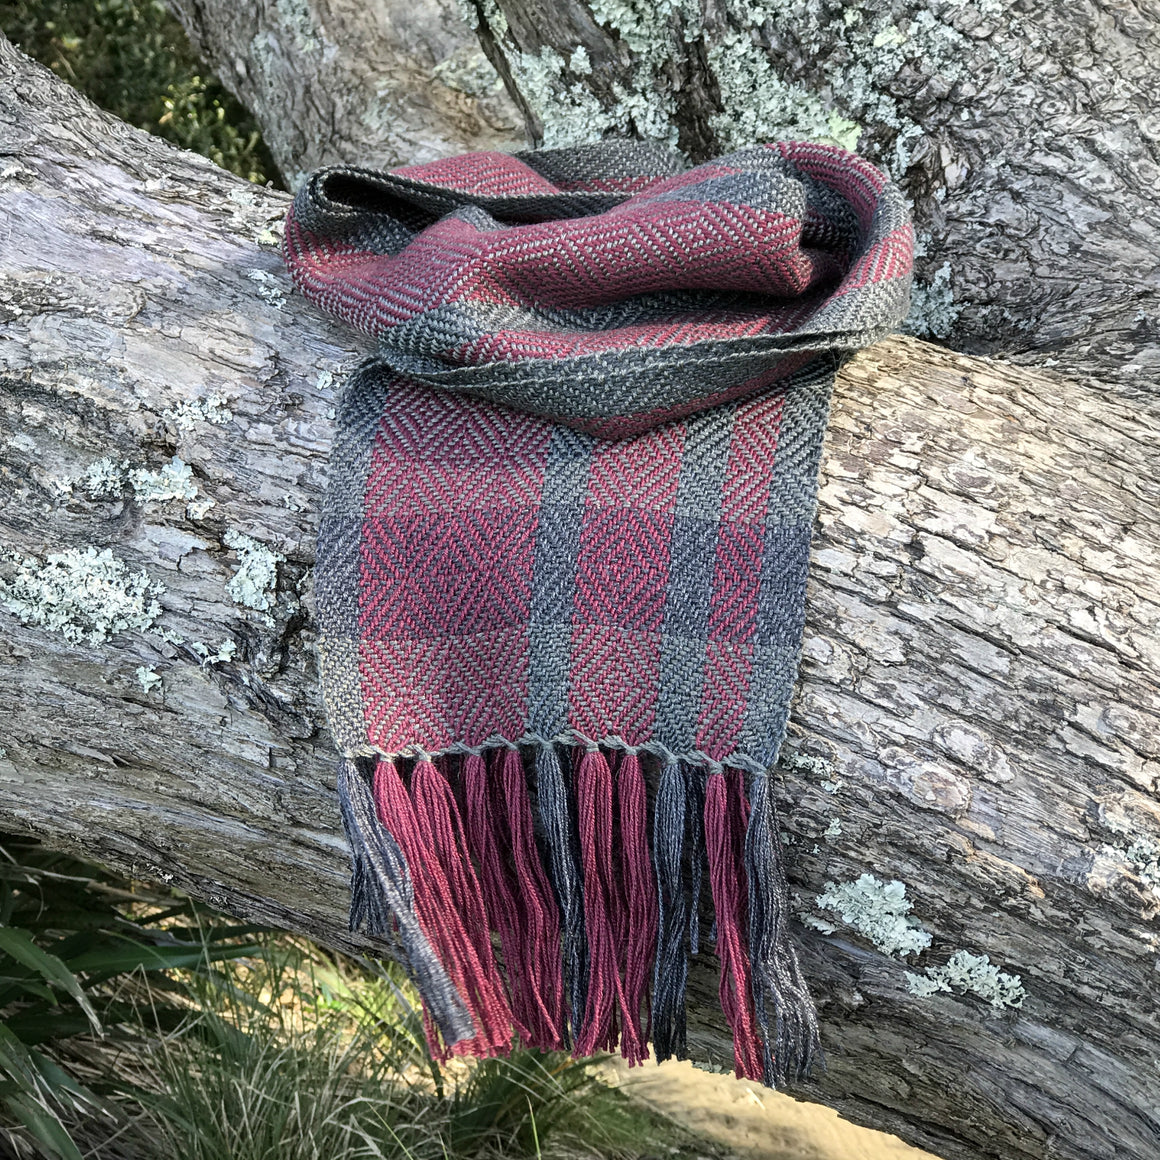 Silky soft handwoven alpaca scarf featuring a sophisticated twill diamond pattern in burgundy tones of charcoal grey and merlot.